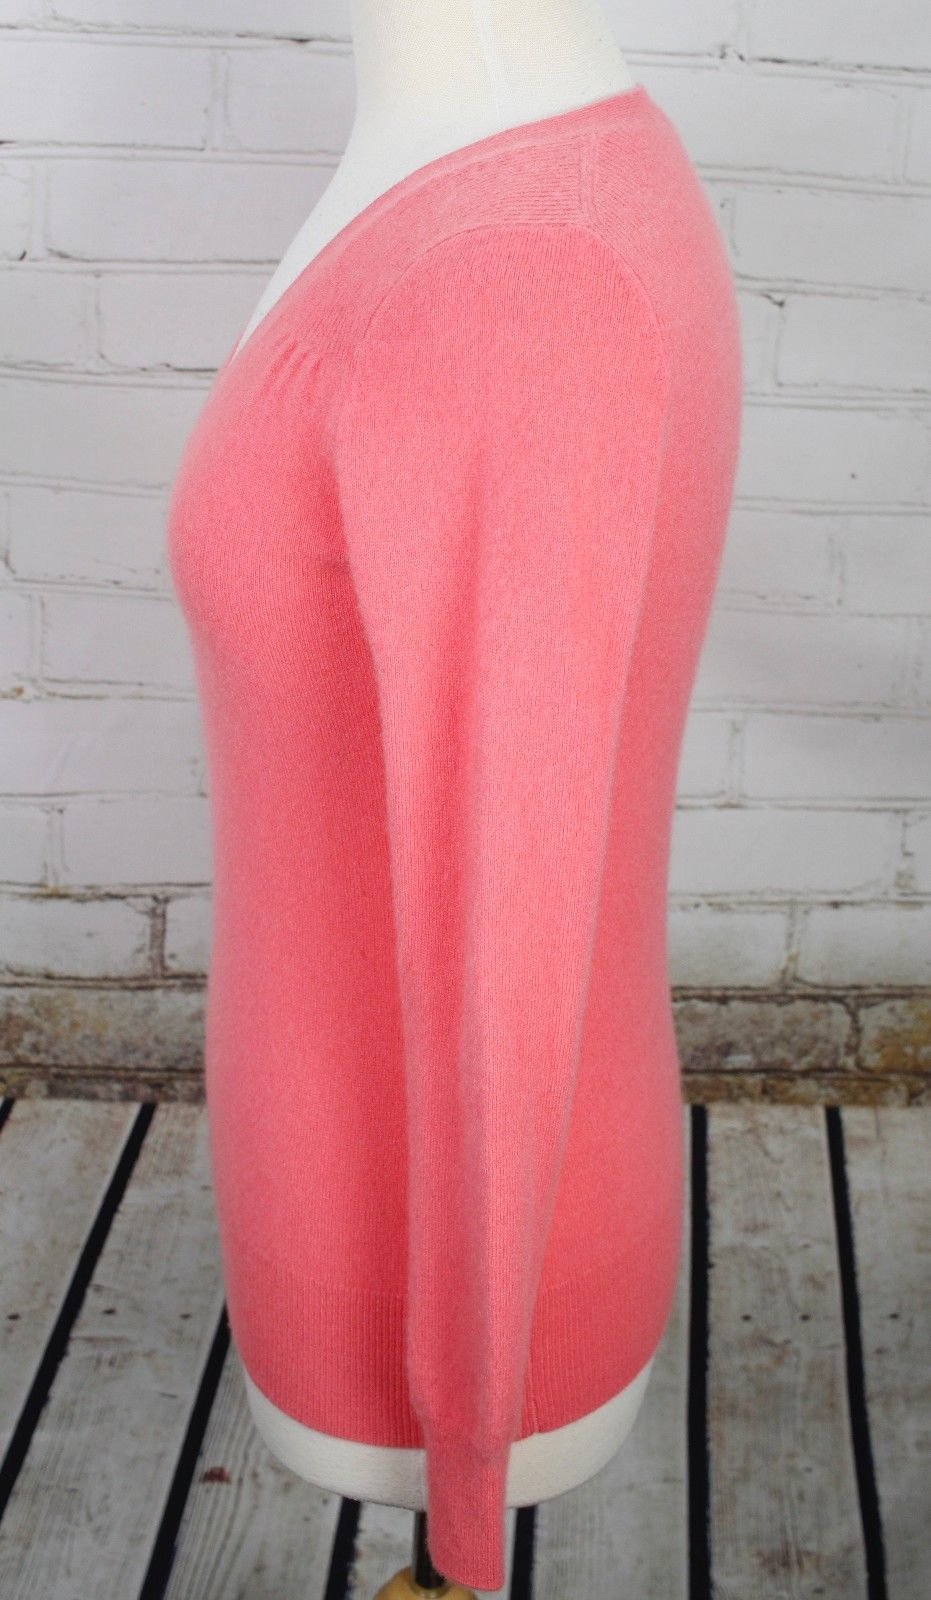 Talbots 100% Cashmere V-Neck Sweater Size XS Pink Pullover Lightweight image 3